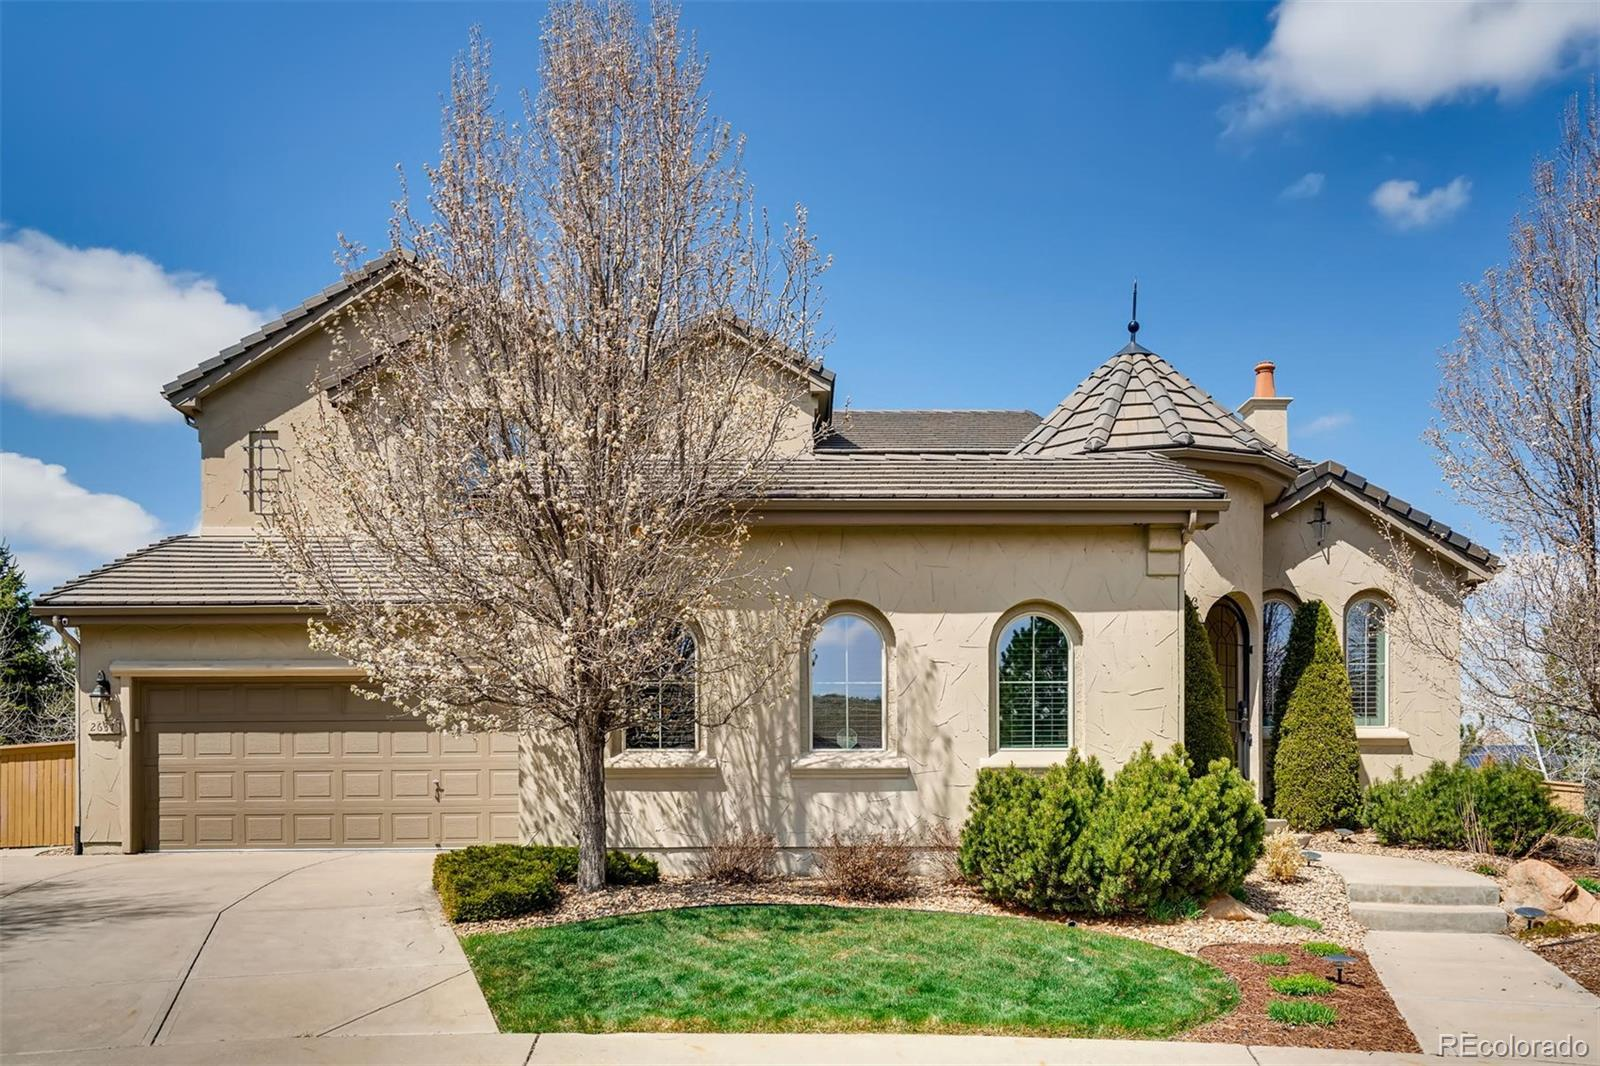 2637 Danbury Avenue, Highlands Ranch, CO 80126 - Highlands Ranch, CO real estate listing